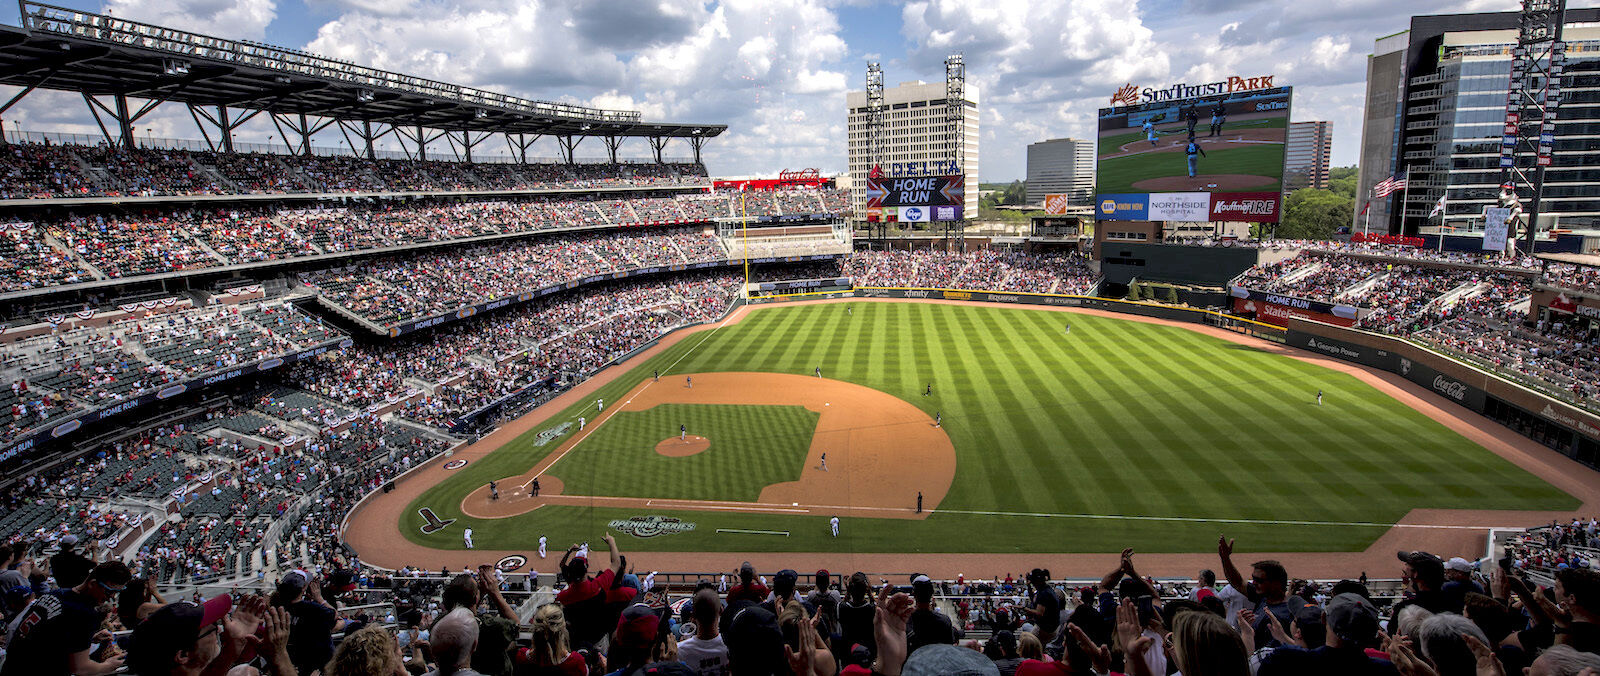 Colorado Rockies at Atlanta Braves Tickets (Chipper Jones Bobblehead)